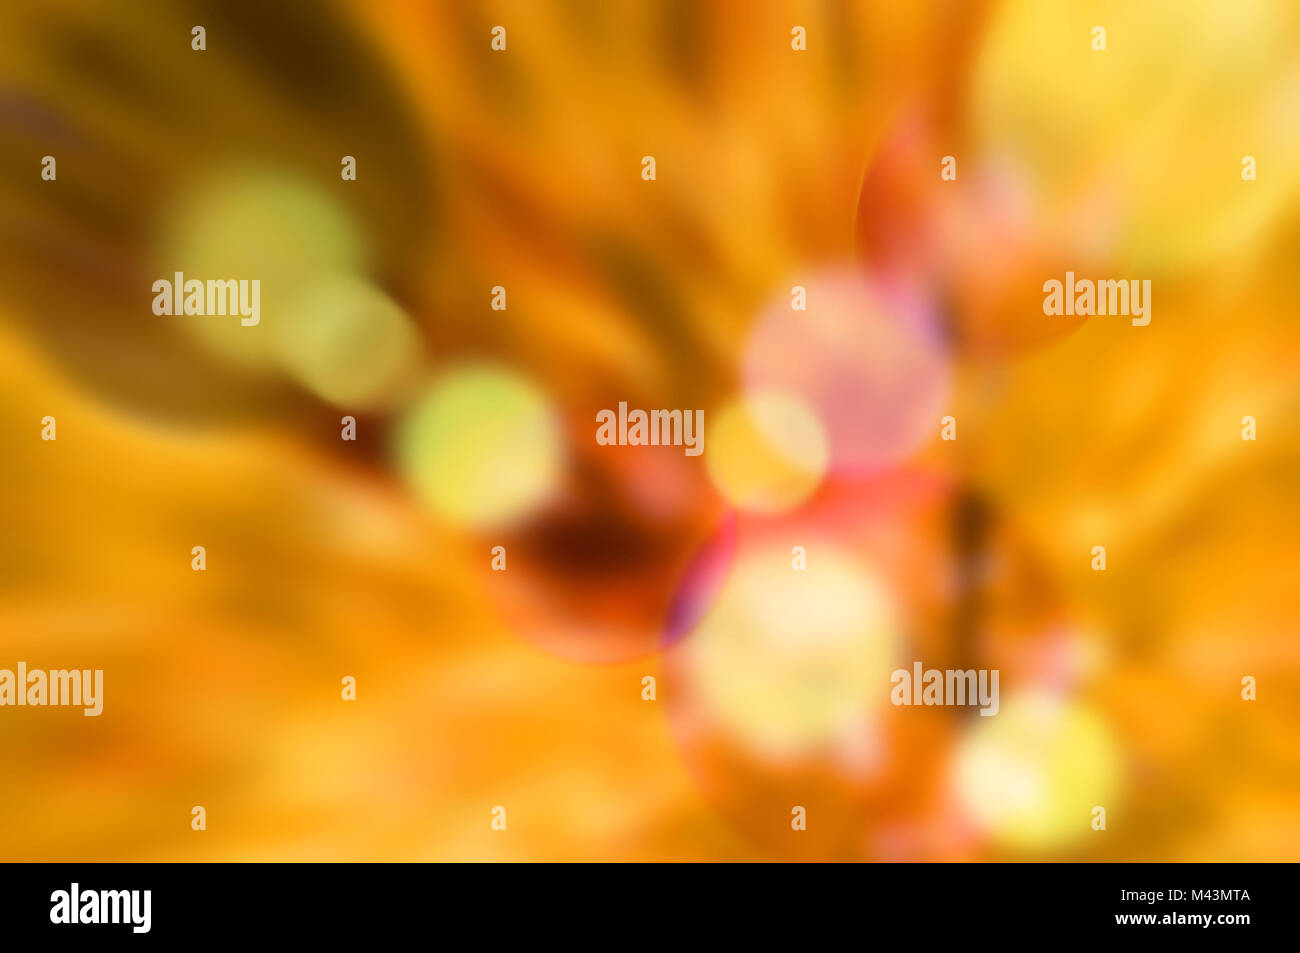 bokeh background in warm colors - Stock Image